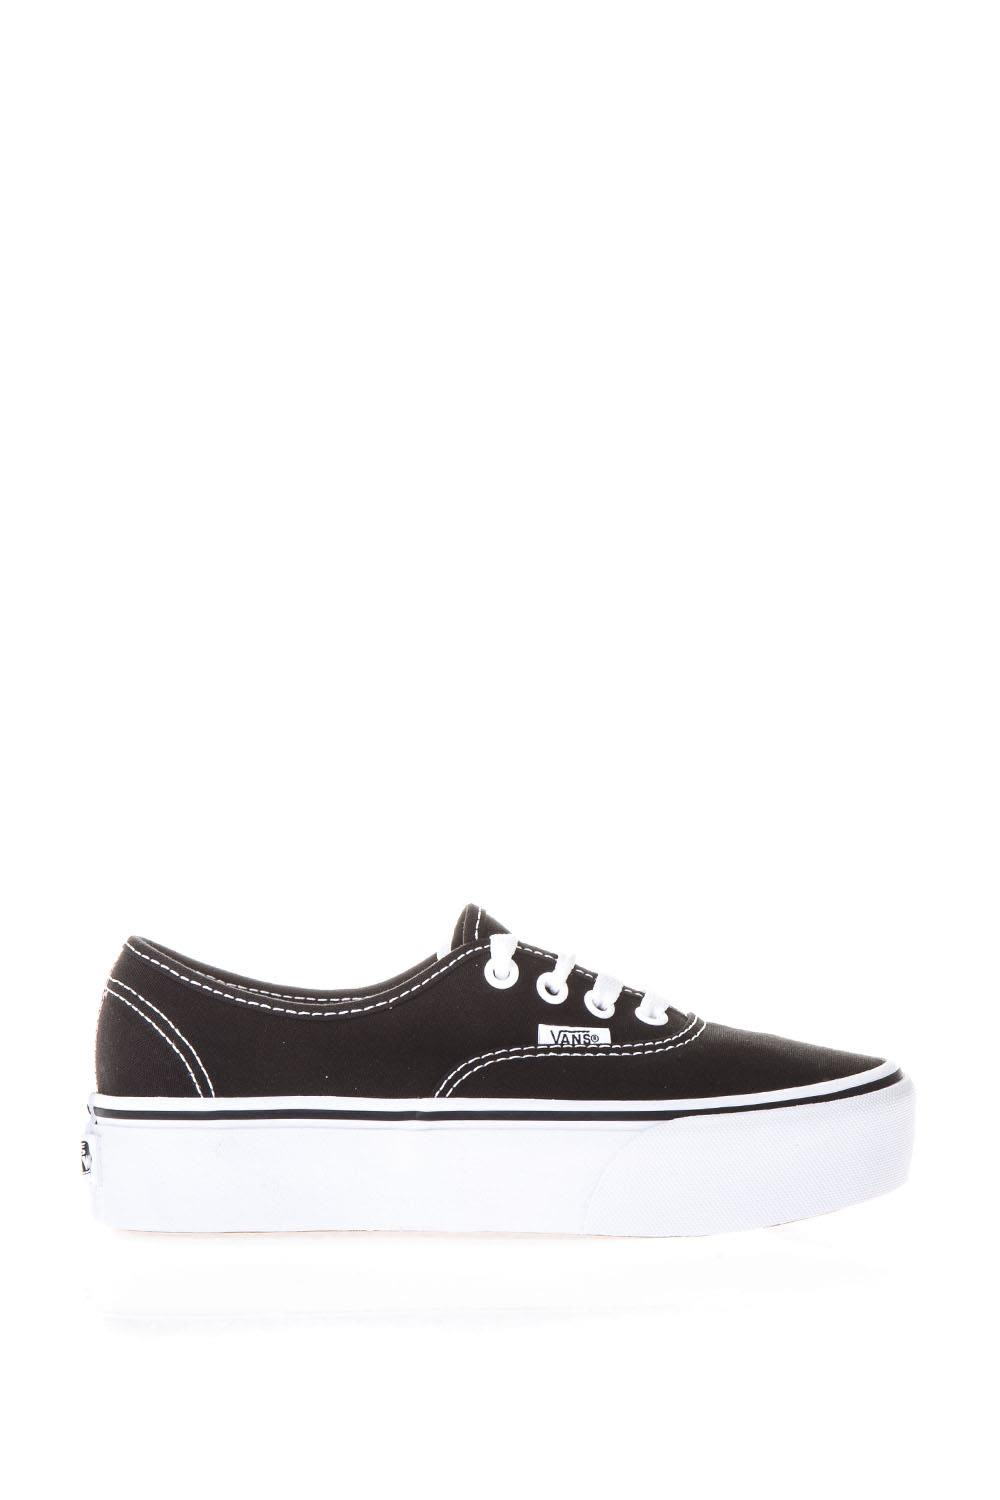 Vans Authentic Platform 2.0 Black Sneakers